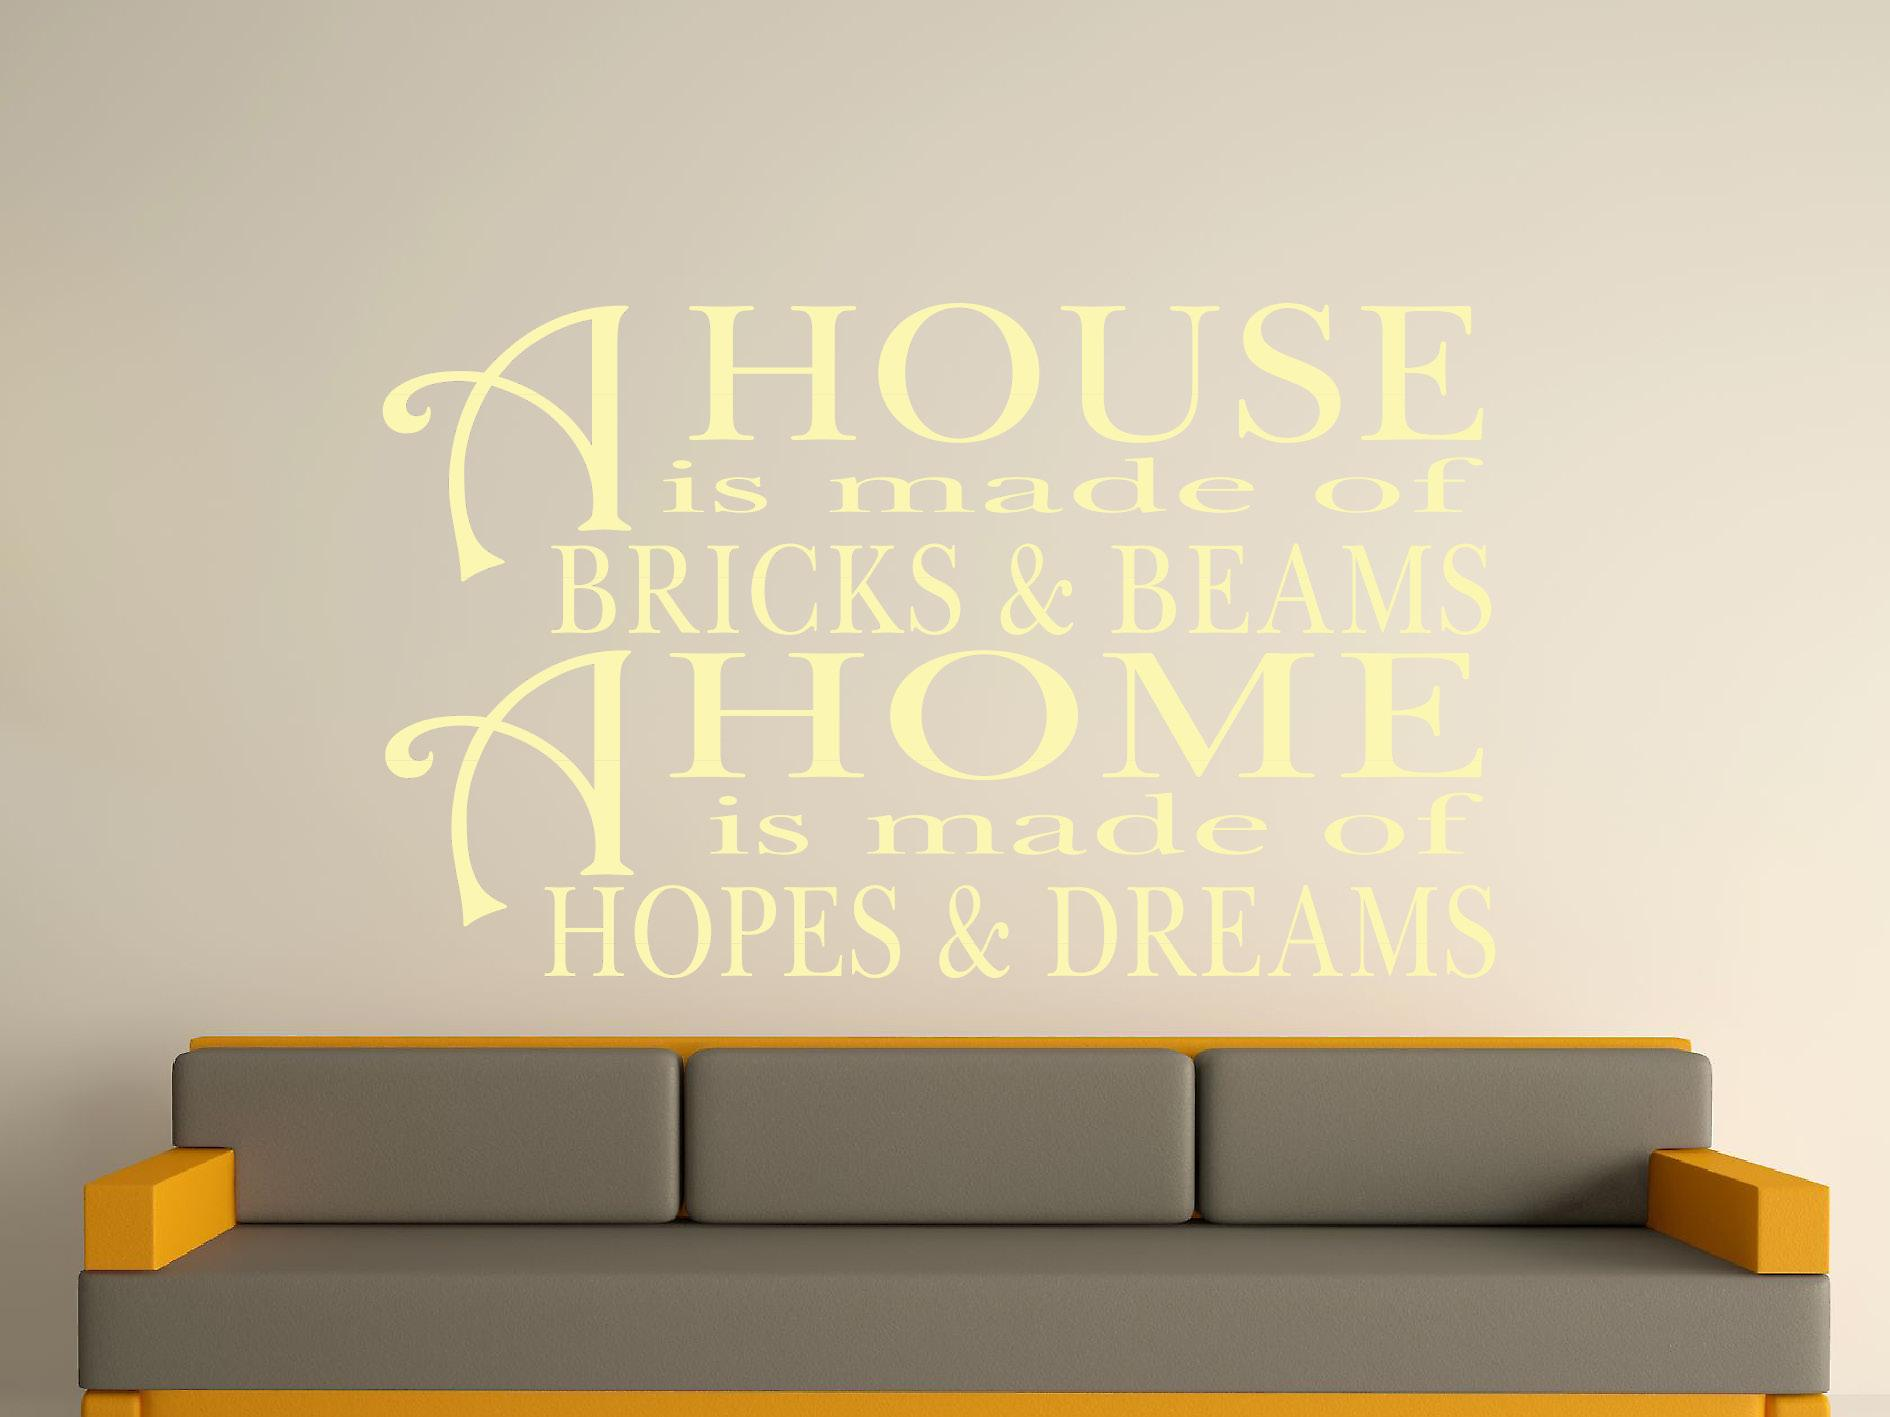 A House Is Made Of Bricks And Beams v2 Wall Art Sticker - Beige